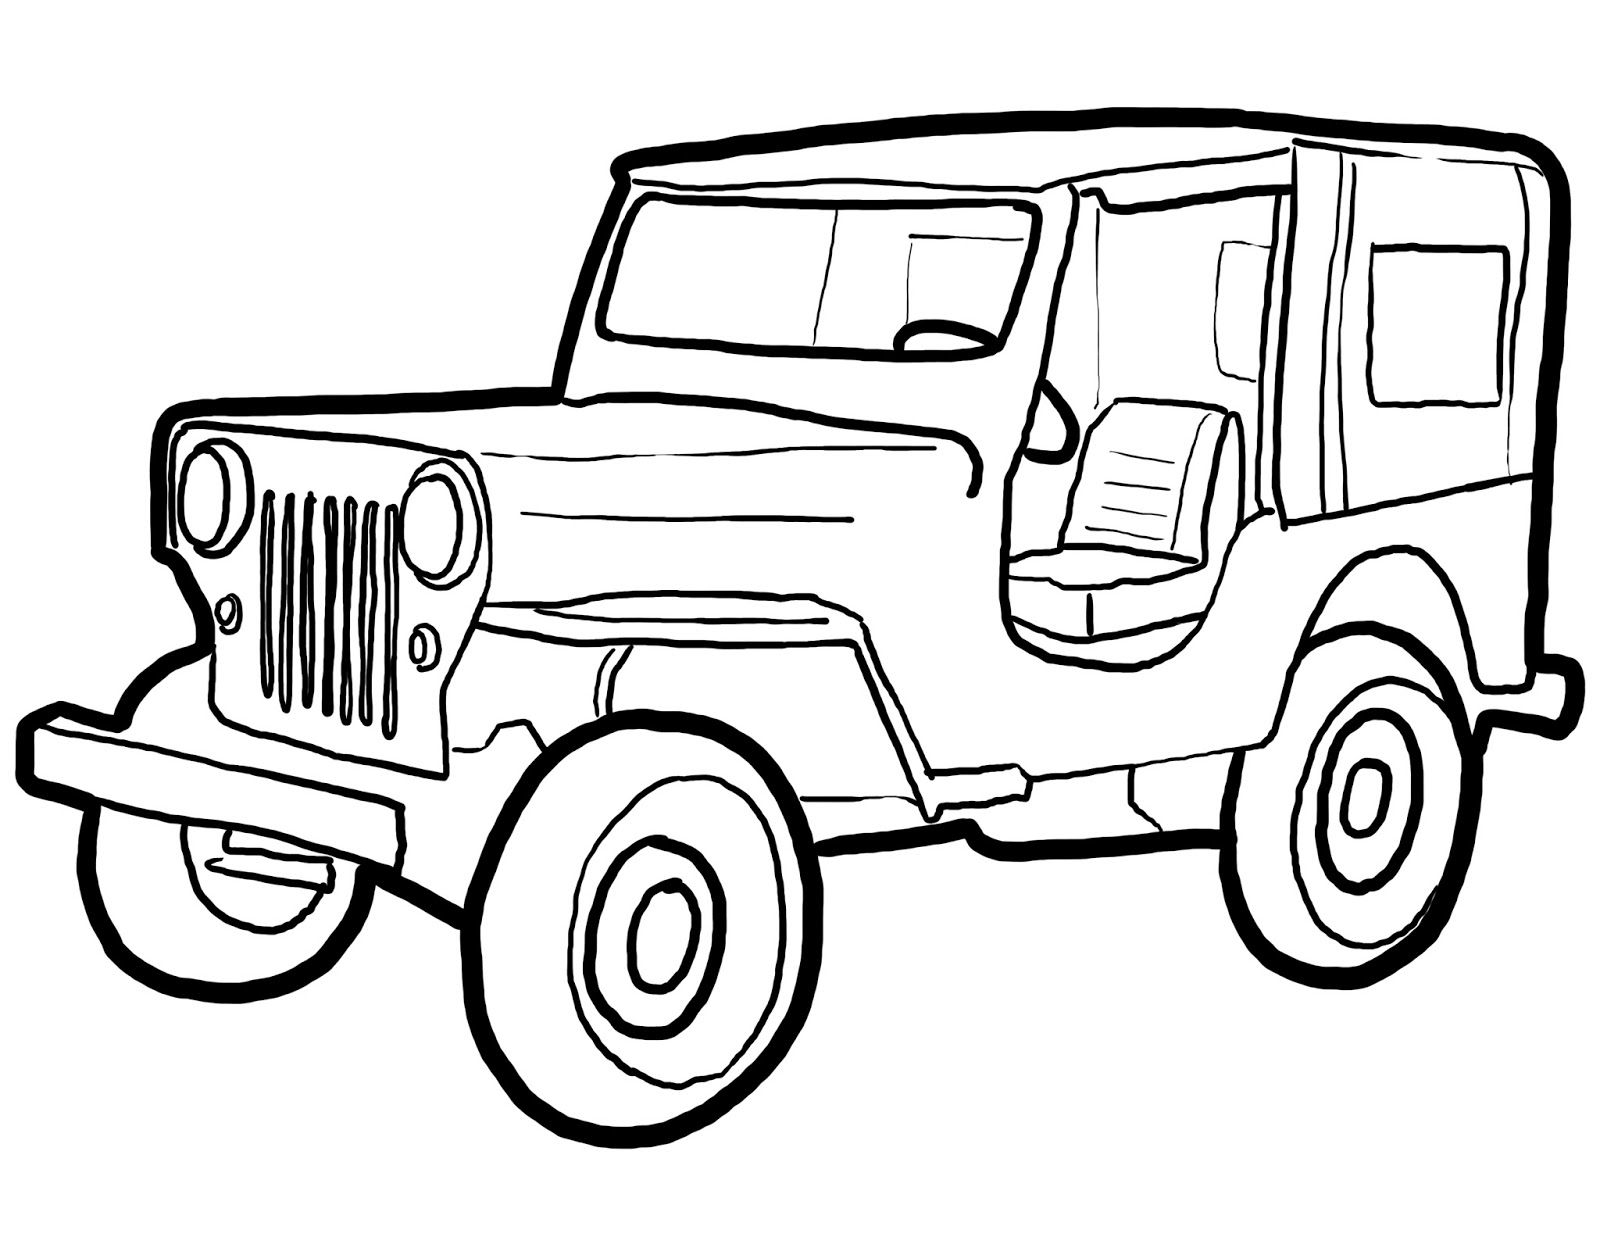 Jeepney clipart black and white graphic royalty free Jeepney Drawing | Free download best Jeepney Drawing on ... graphic royalty free